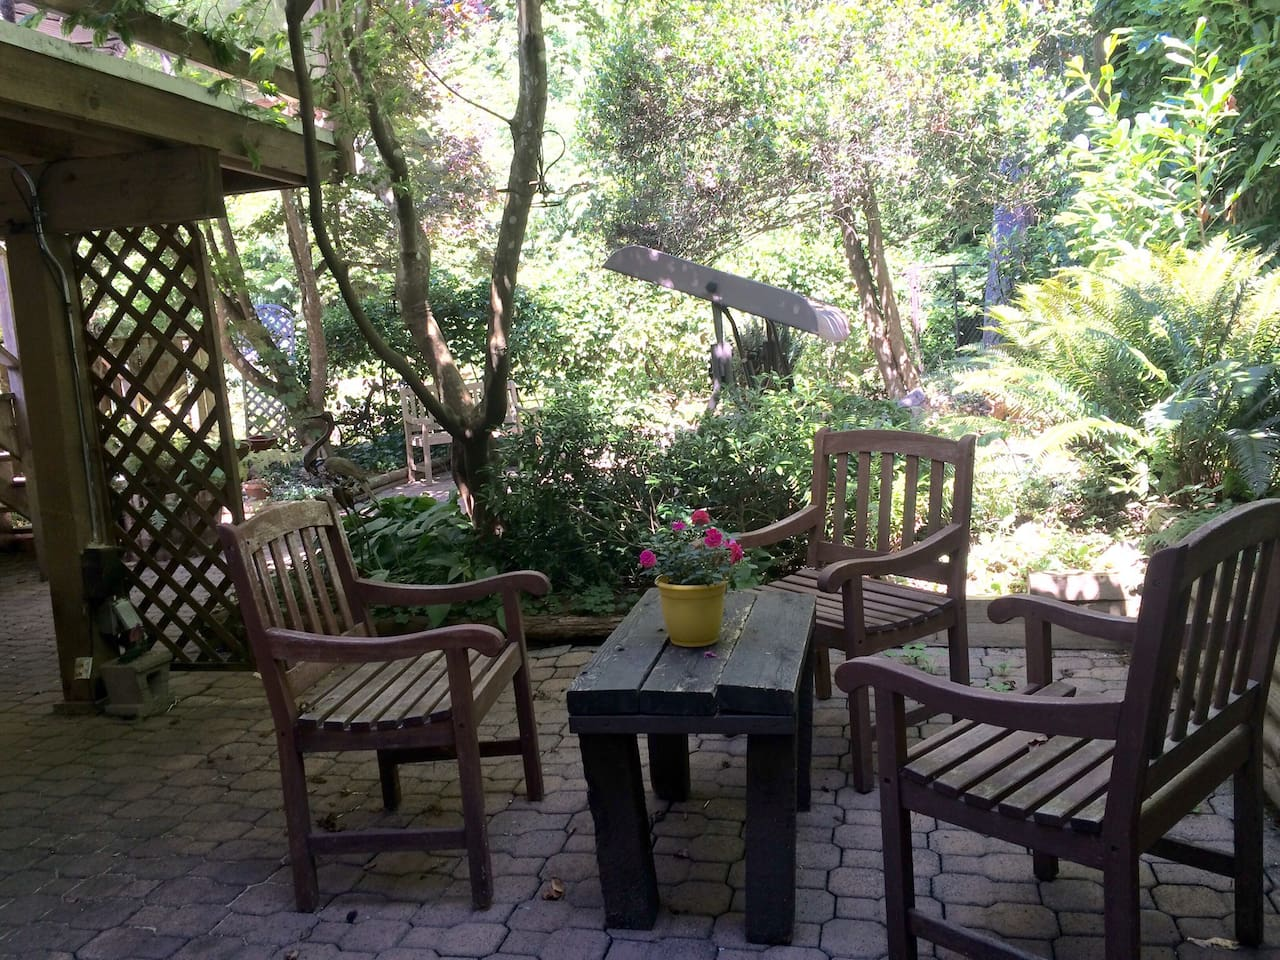 Creek side patio / outdoor living space.